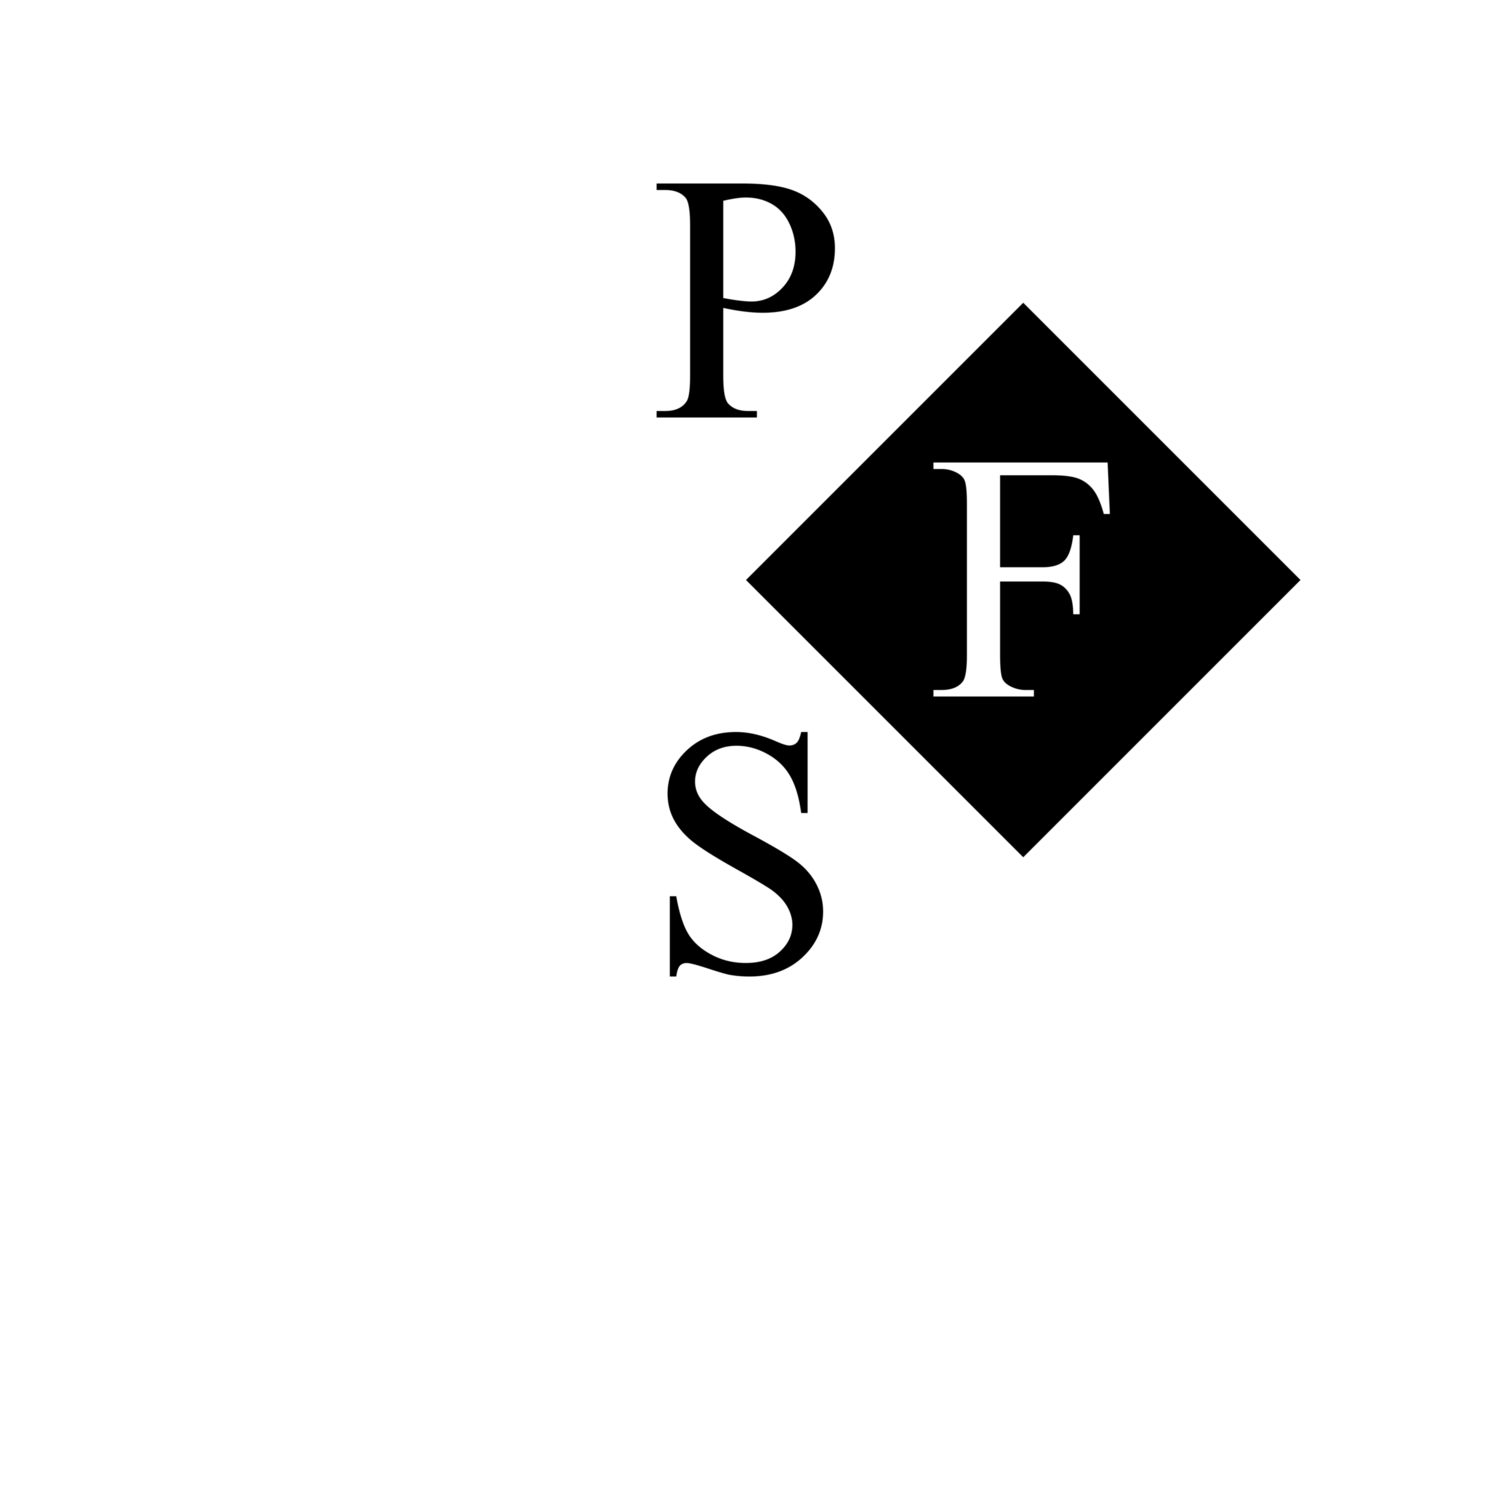 Phoenix Flight Software